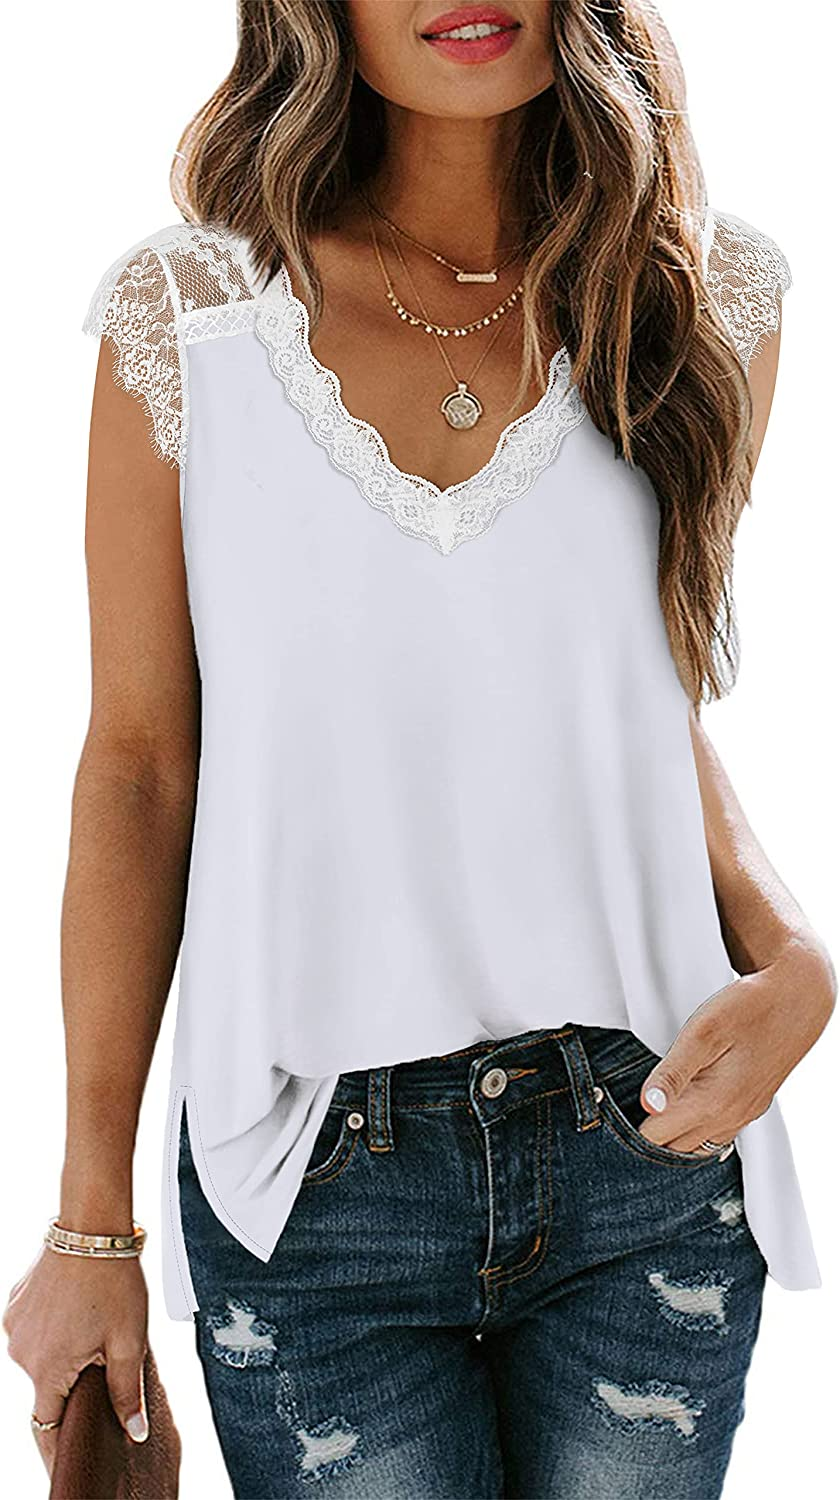 XIEERDUO Womens Lace Tank Tops for Summer V Neck Casual Sleeveless Shirts Loose Fitting